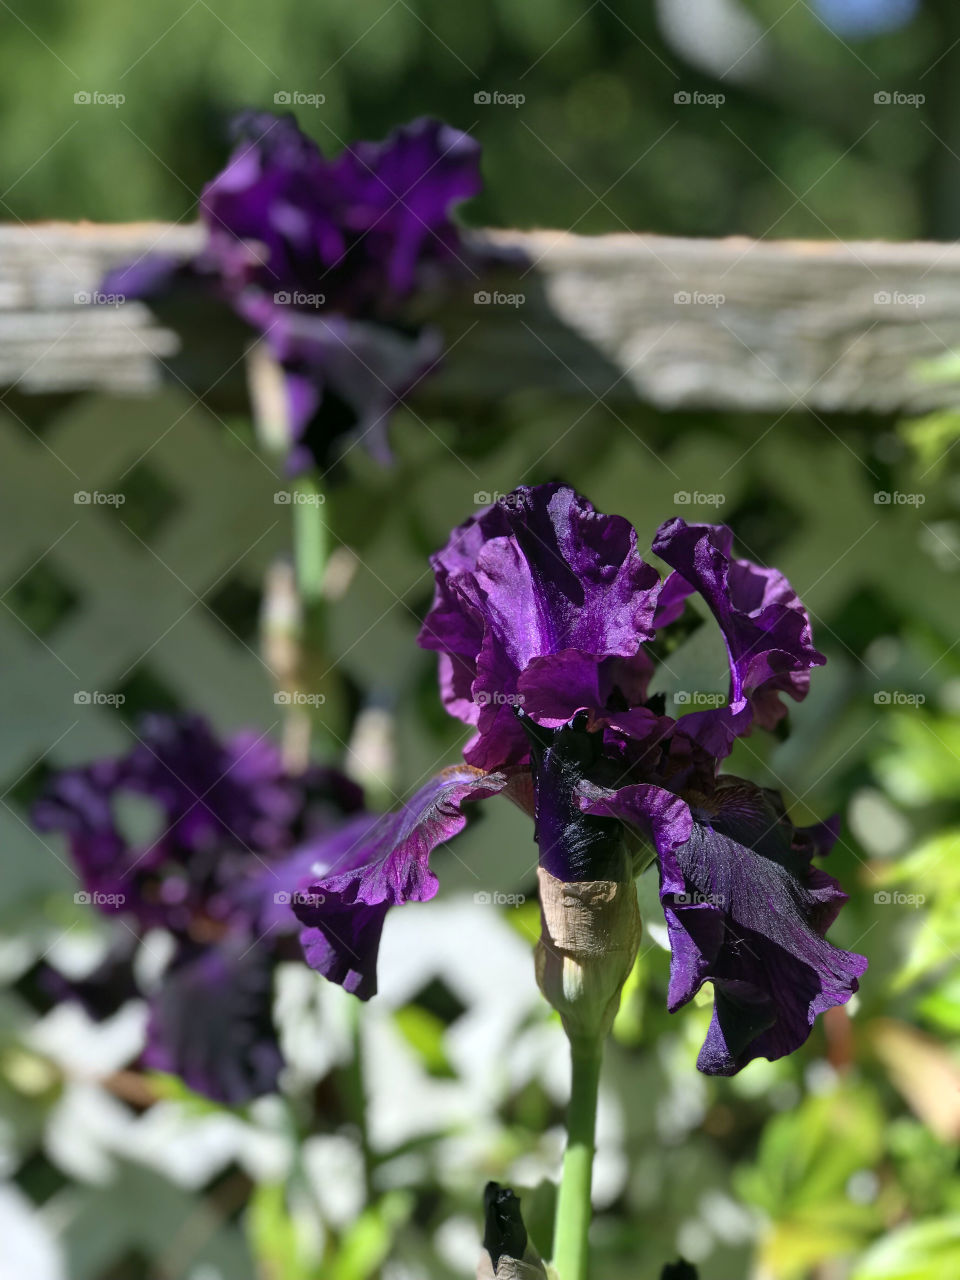 A shot of a trio of beautiful purple irises. The flower in front is in focus while the other two blooms are slightly blurred in the background. The greenery against the white lattice provides contrast & focuses all attention on the blooms.